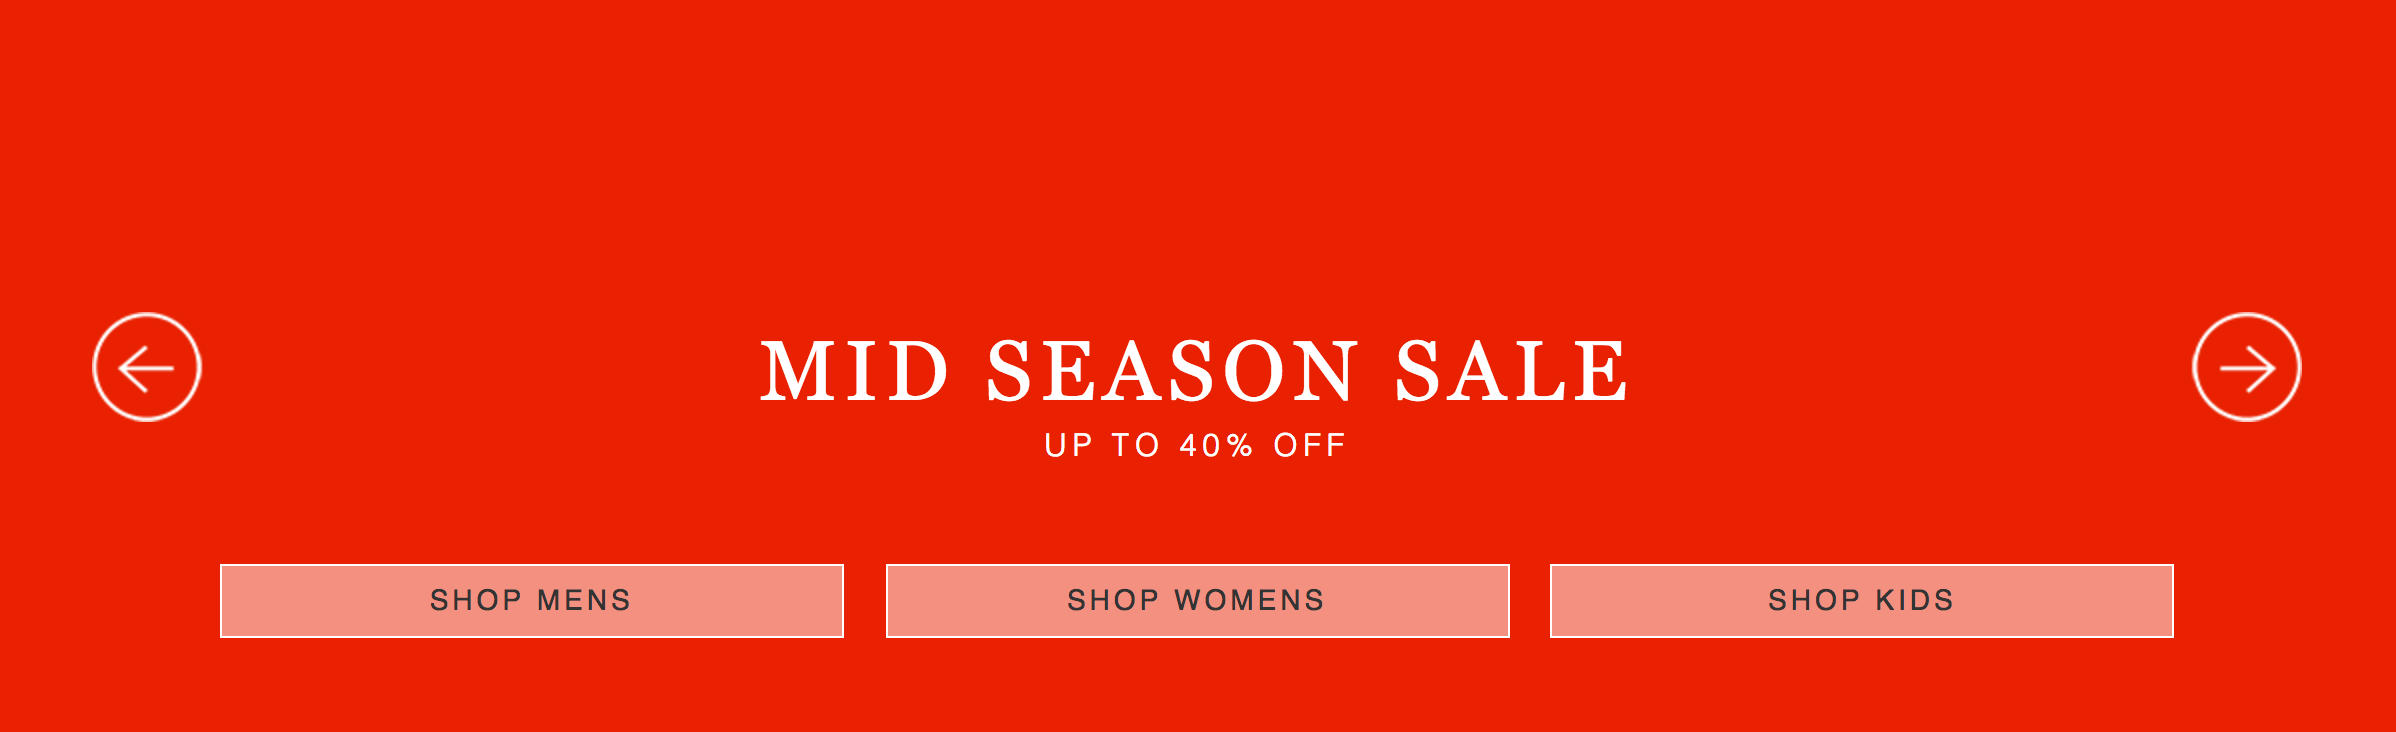 Craghoppers: Mid Season Sale up to 40% off women's, men's and kids' outdoor clothing